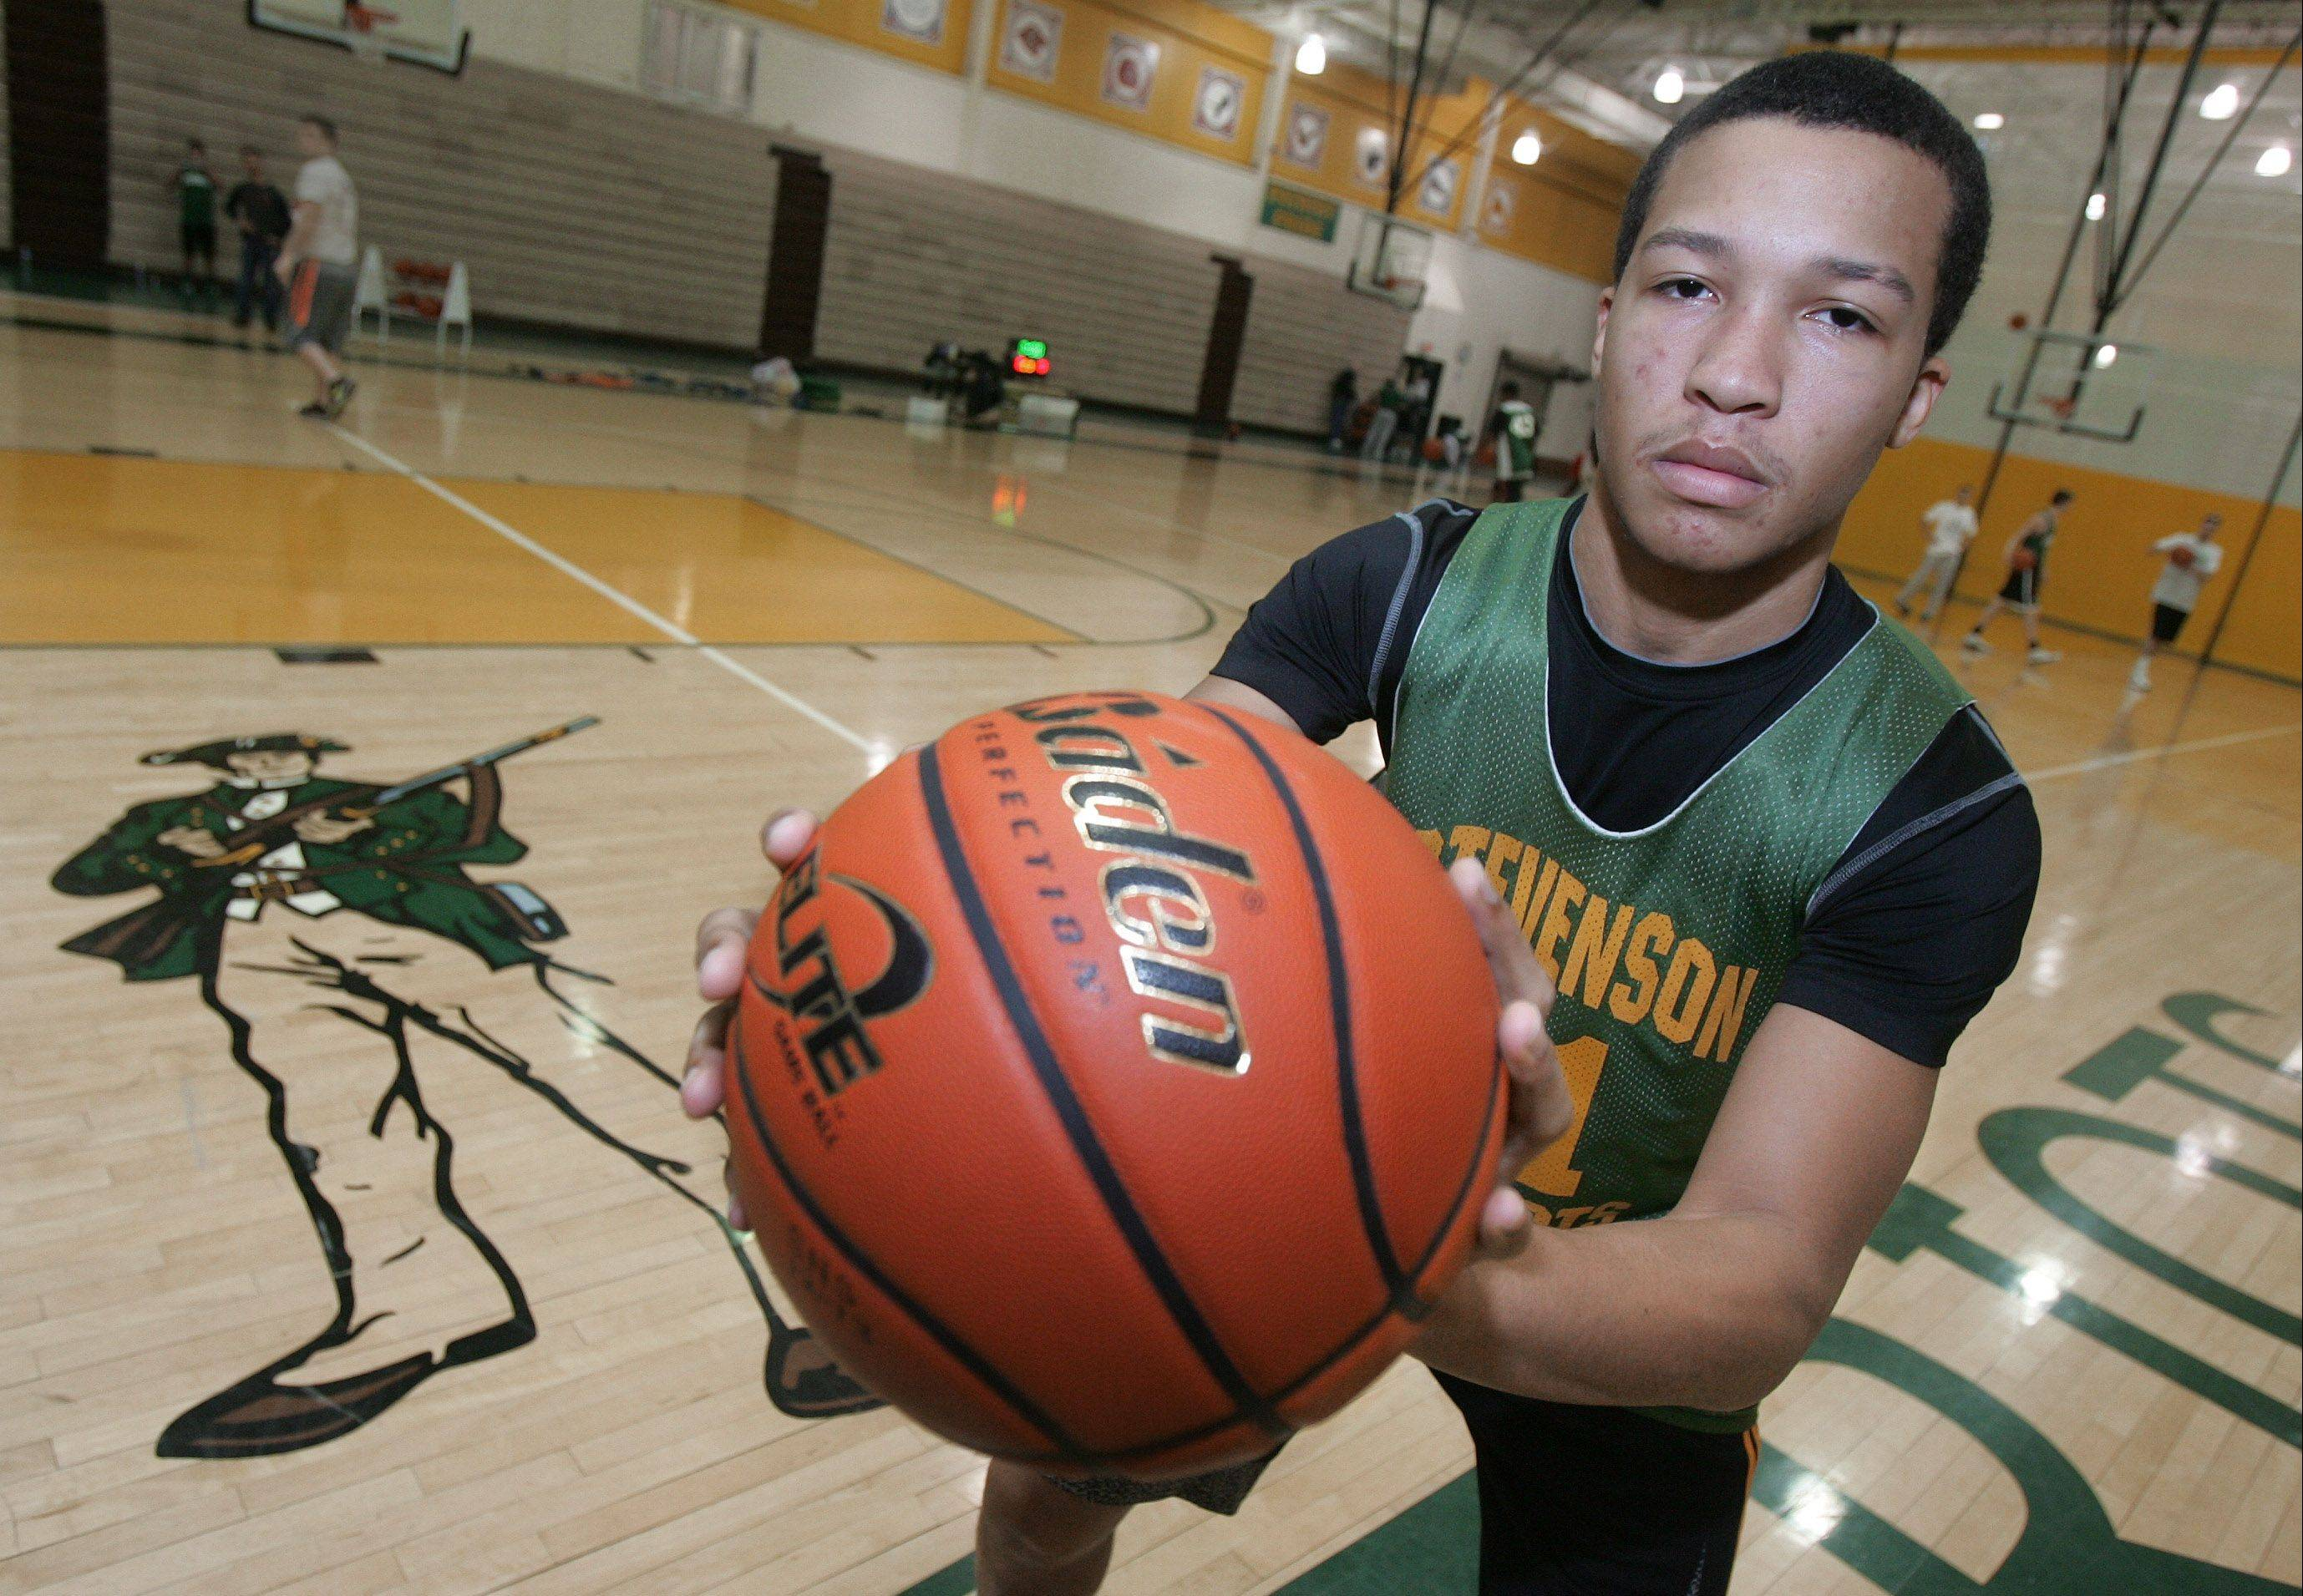 Point guard Jalen Brunson is having a ball leading a Stevenson team that's finding plenty of success this season.